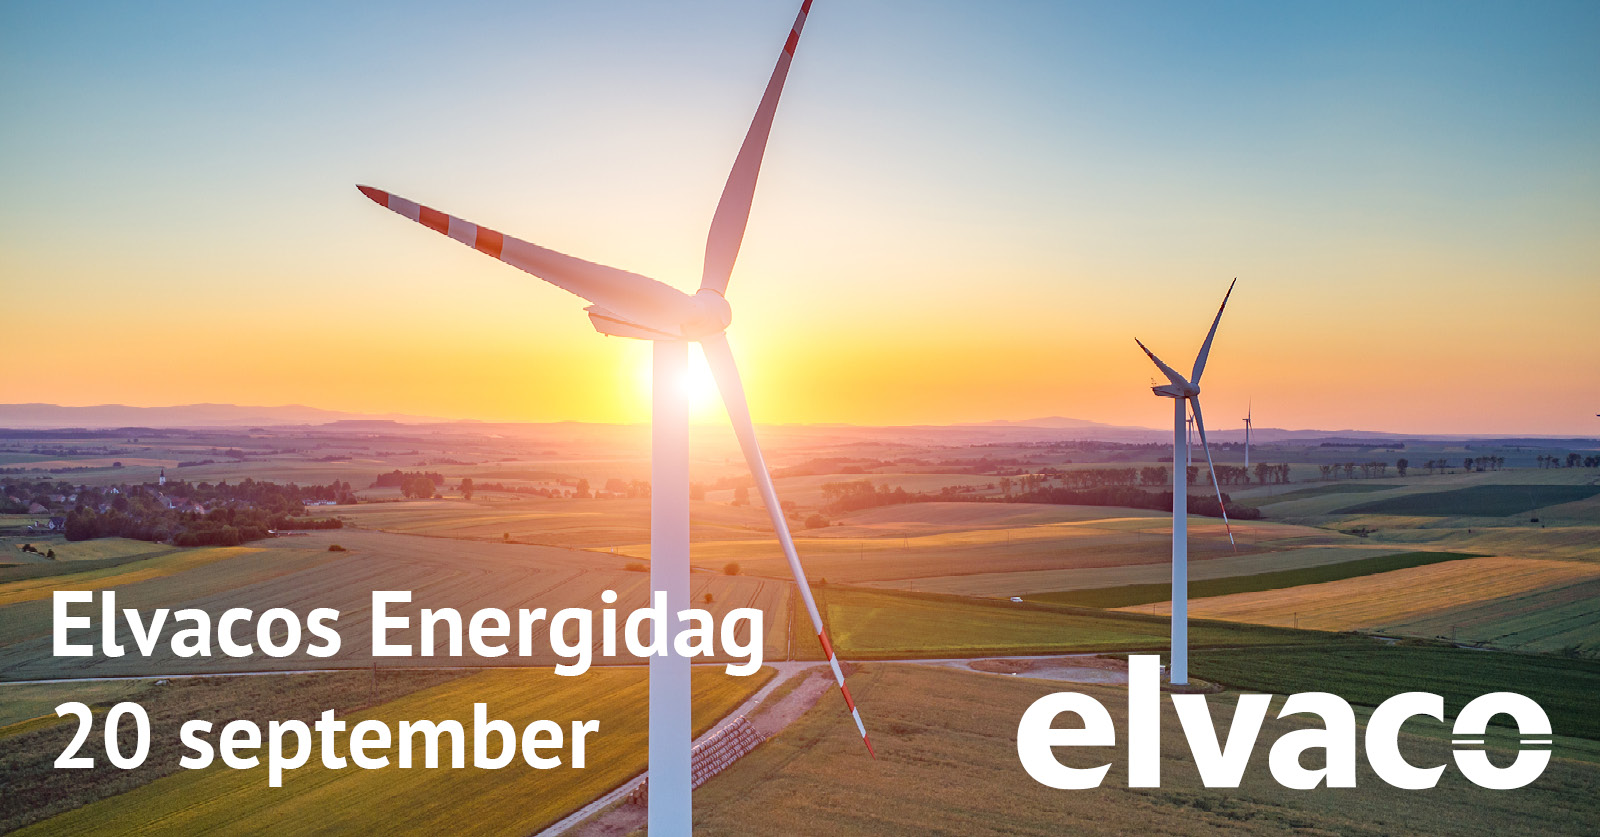 Welcome to Elvaco's Energy day on September 20!